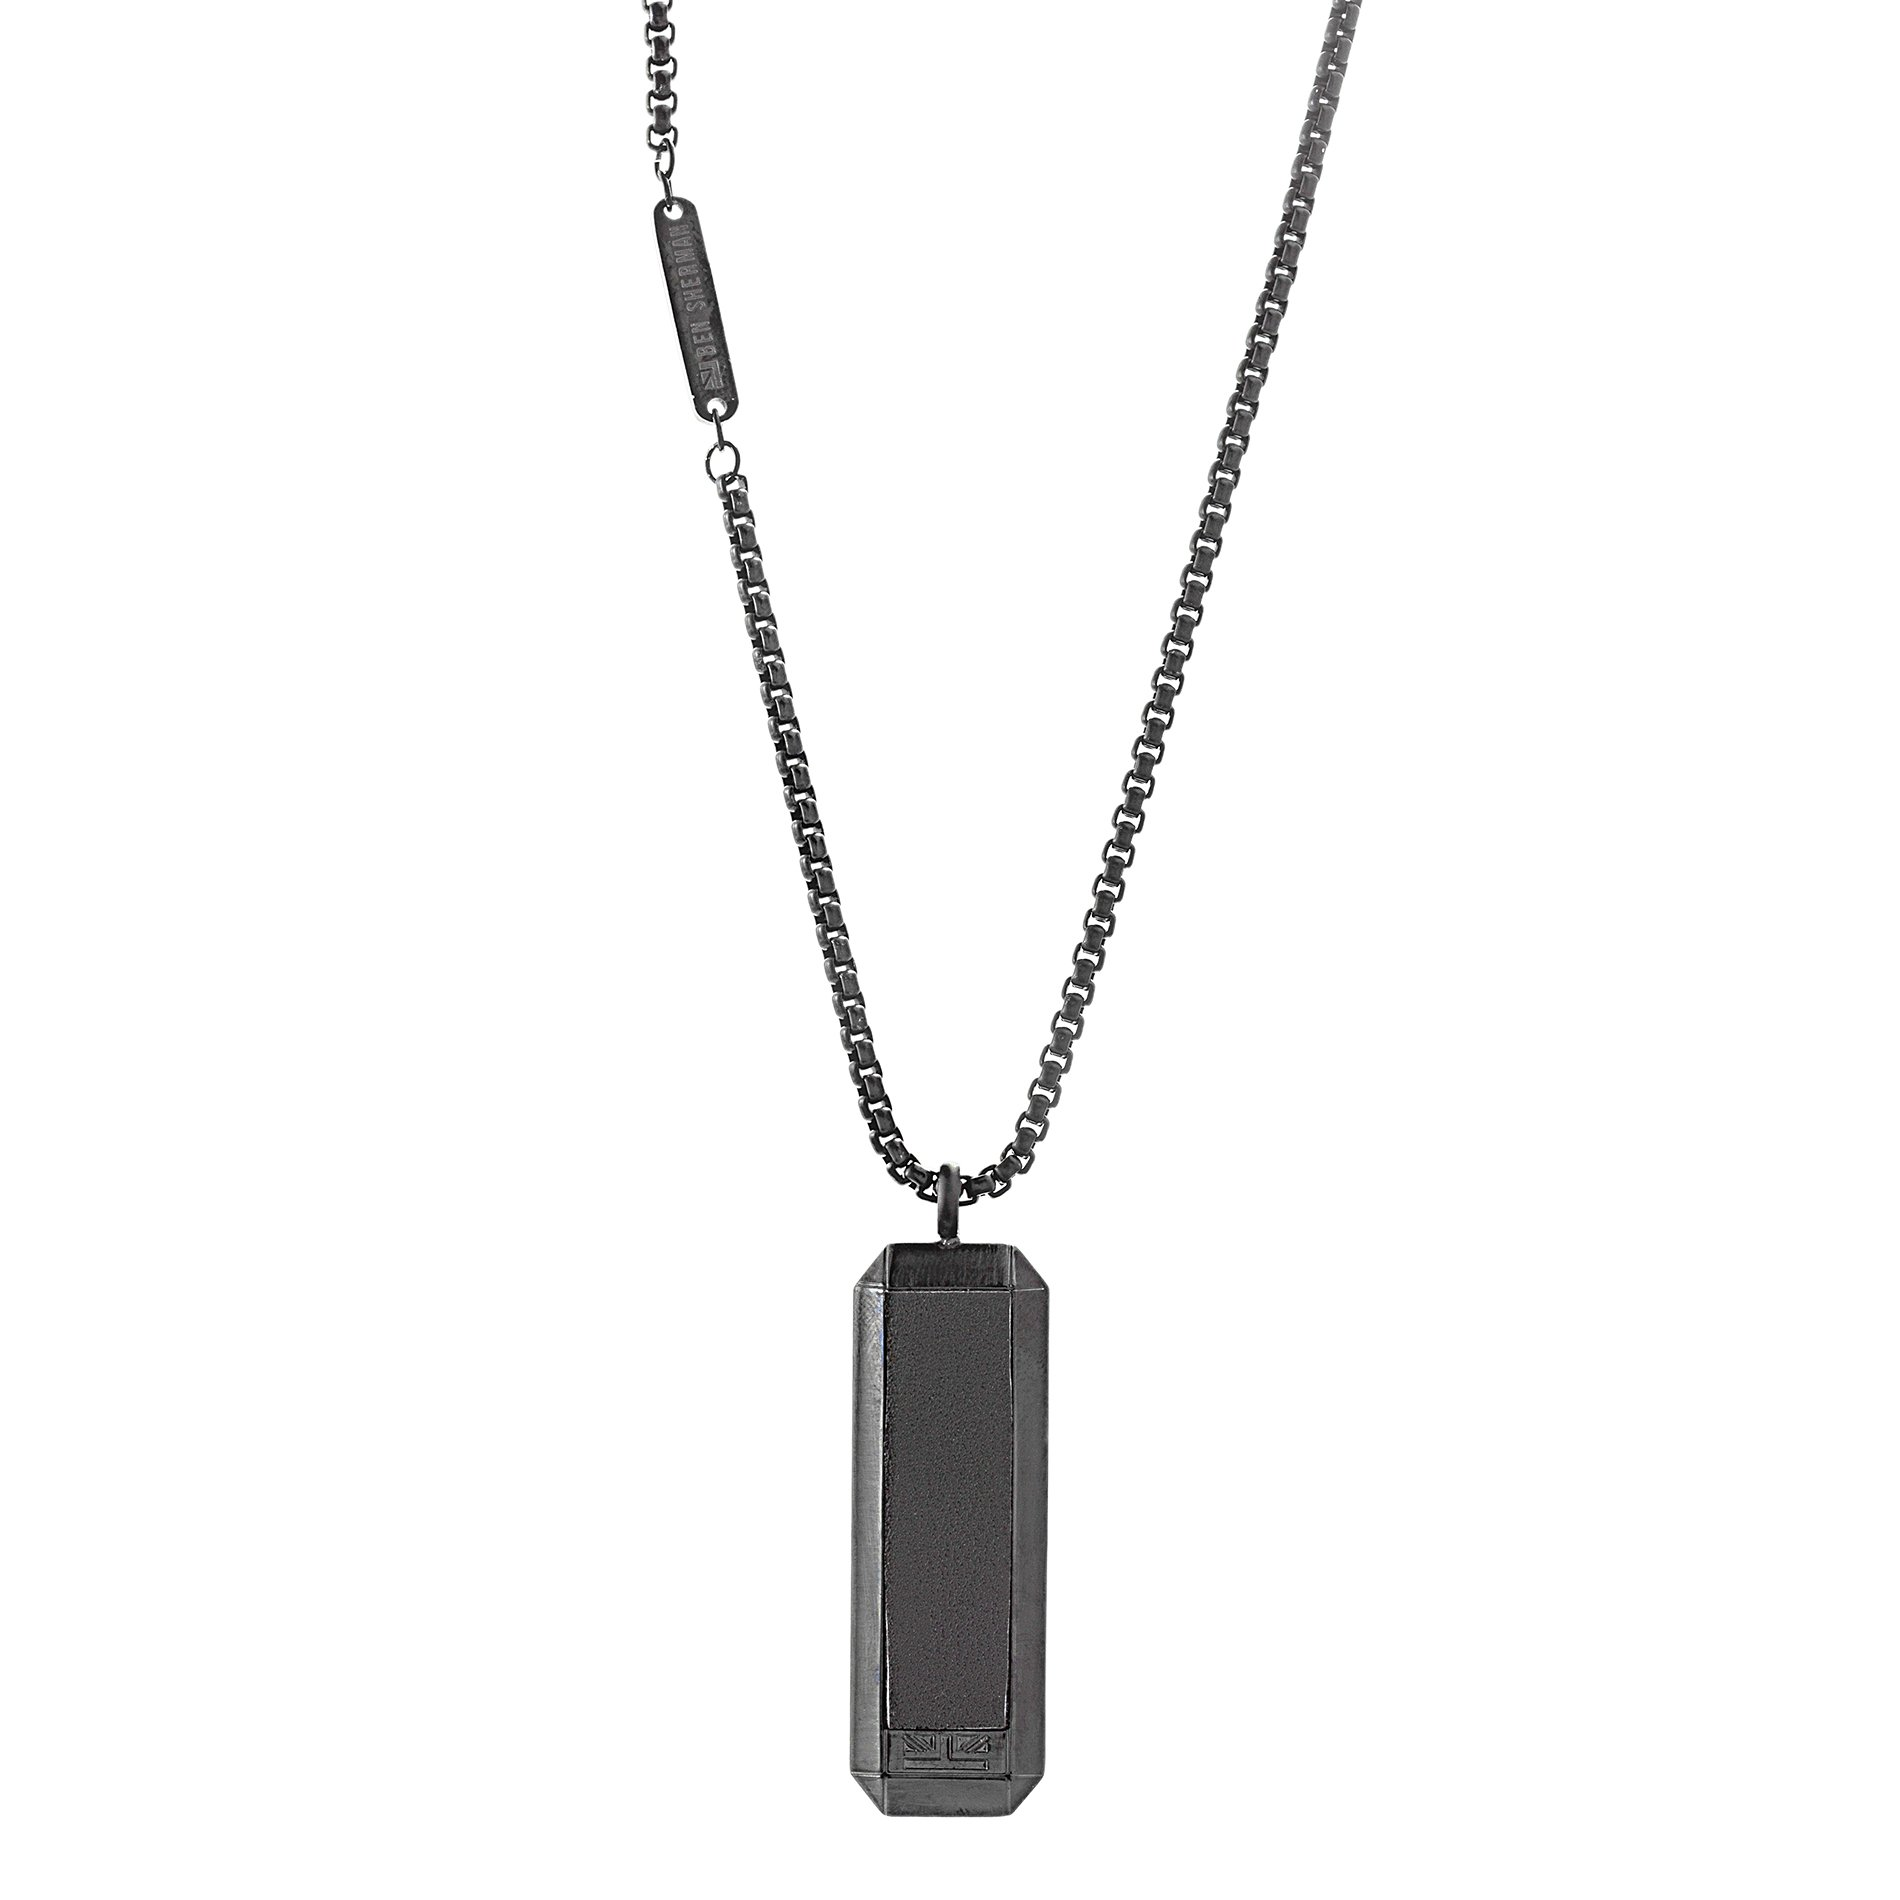 Ben Sherman Stainless Steel Men's Leather Dog Tag Pendant 26'' Box Chain Necklace (Black)